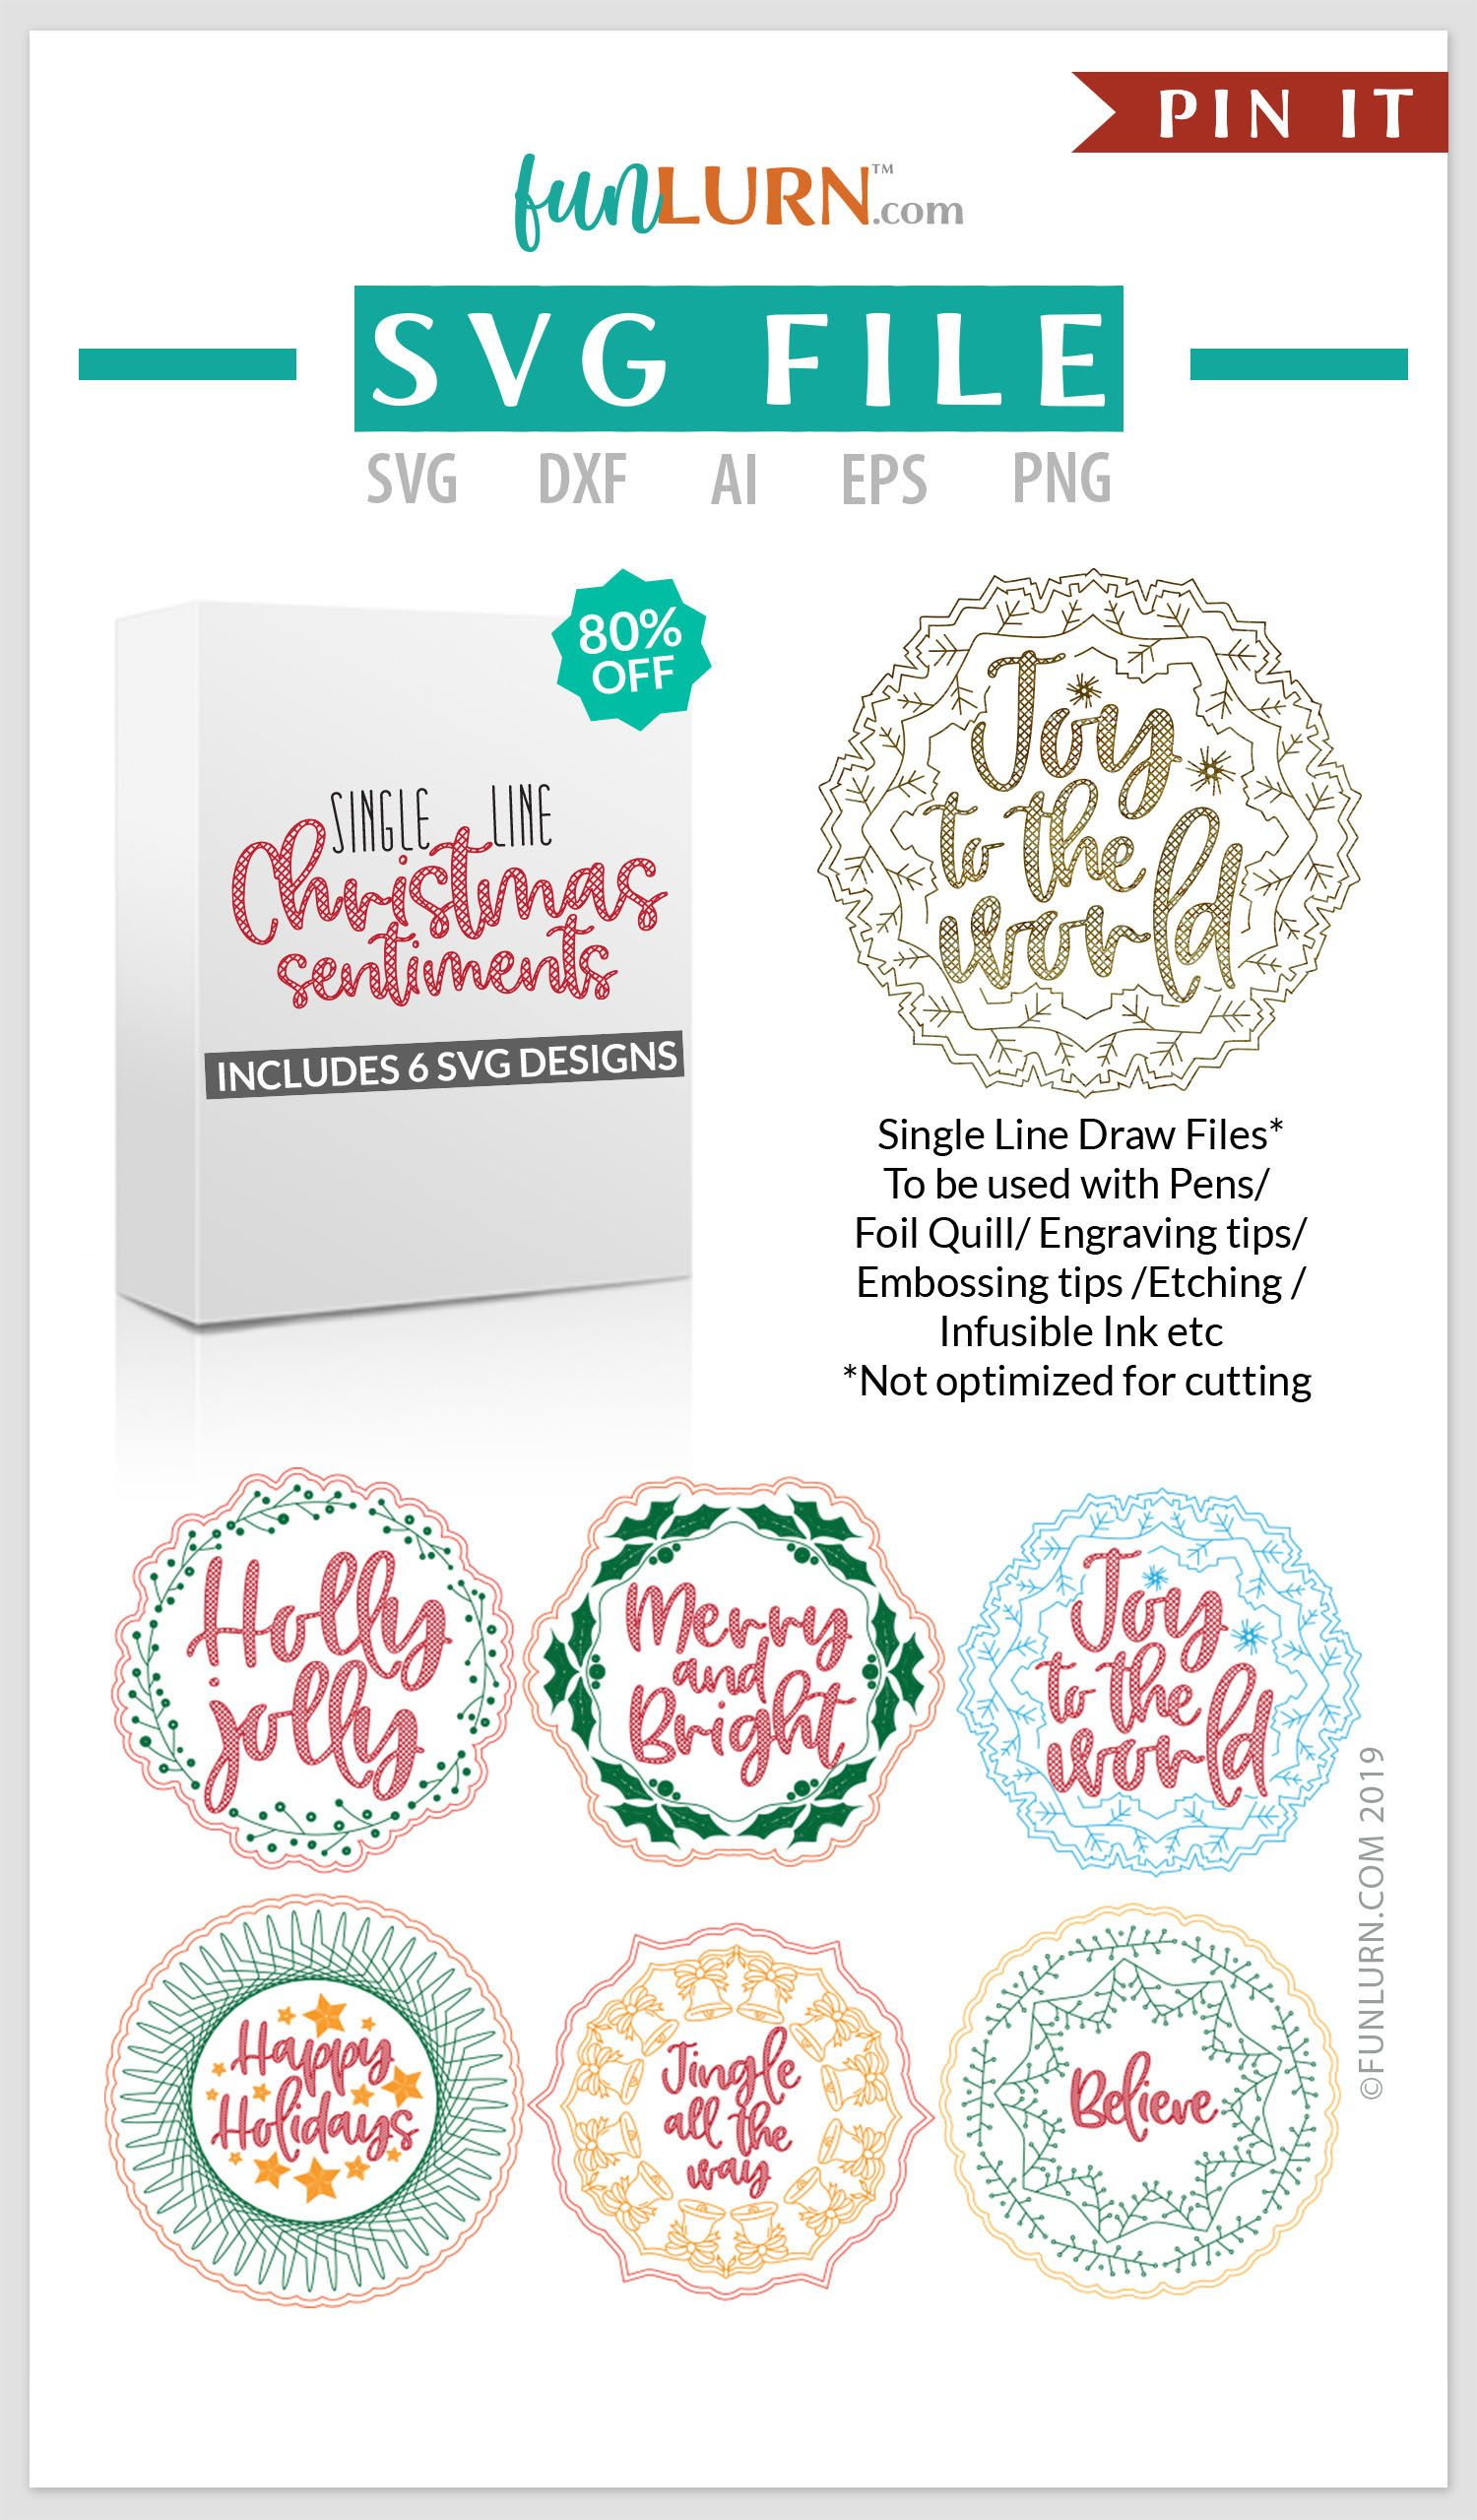 Single Line Christmas Sentiments For use with Foil Quill